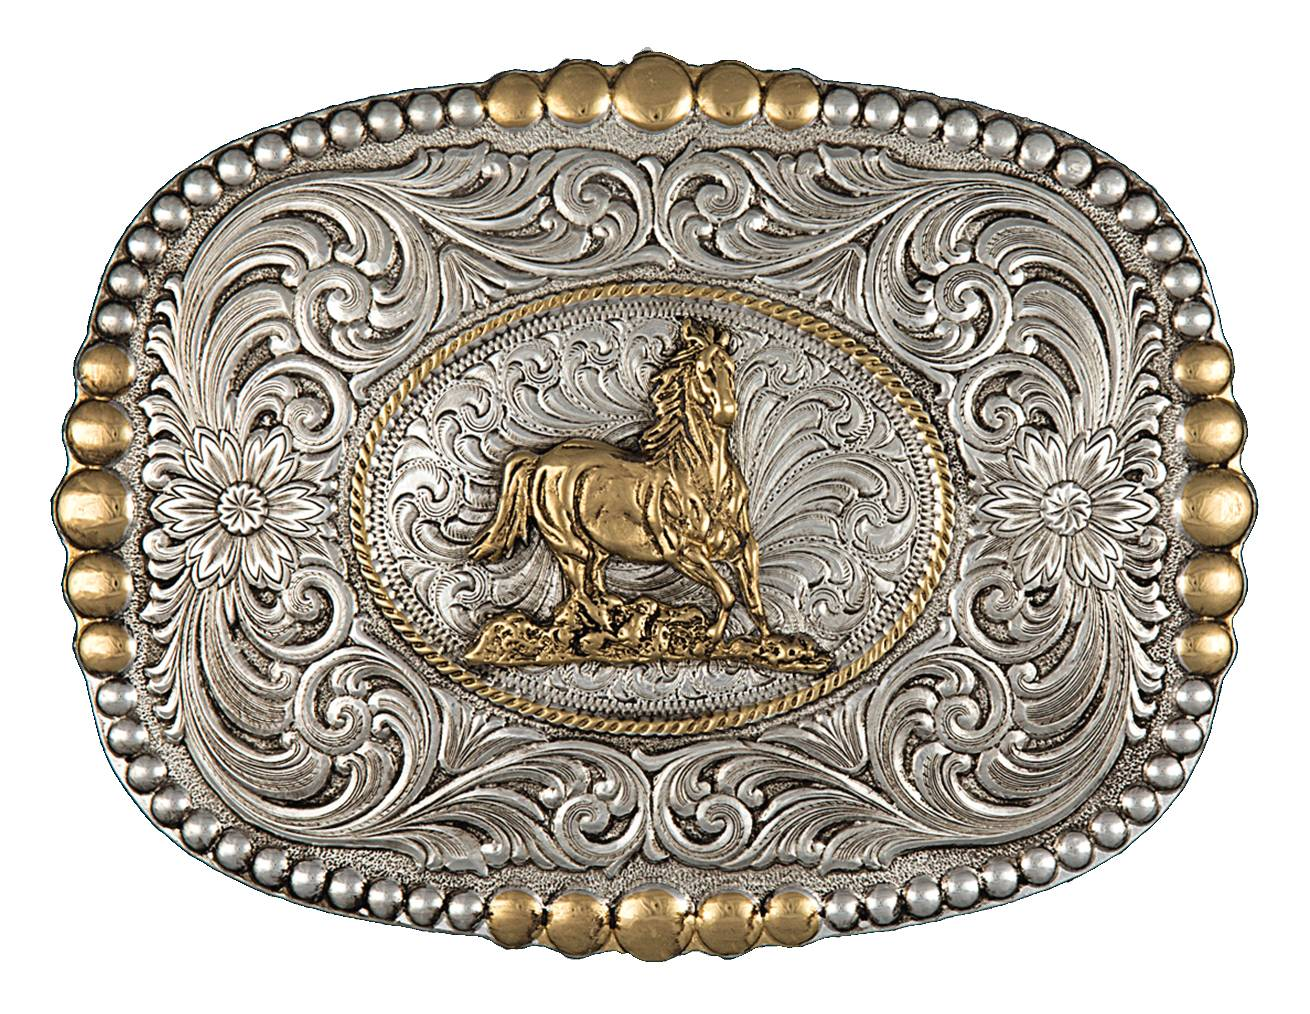 Montana Silversmiths Heirloom Gold Pioneer Portrait Buckle with Galloping Horse